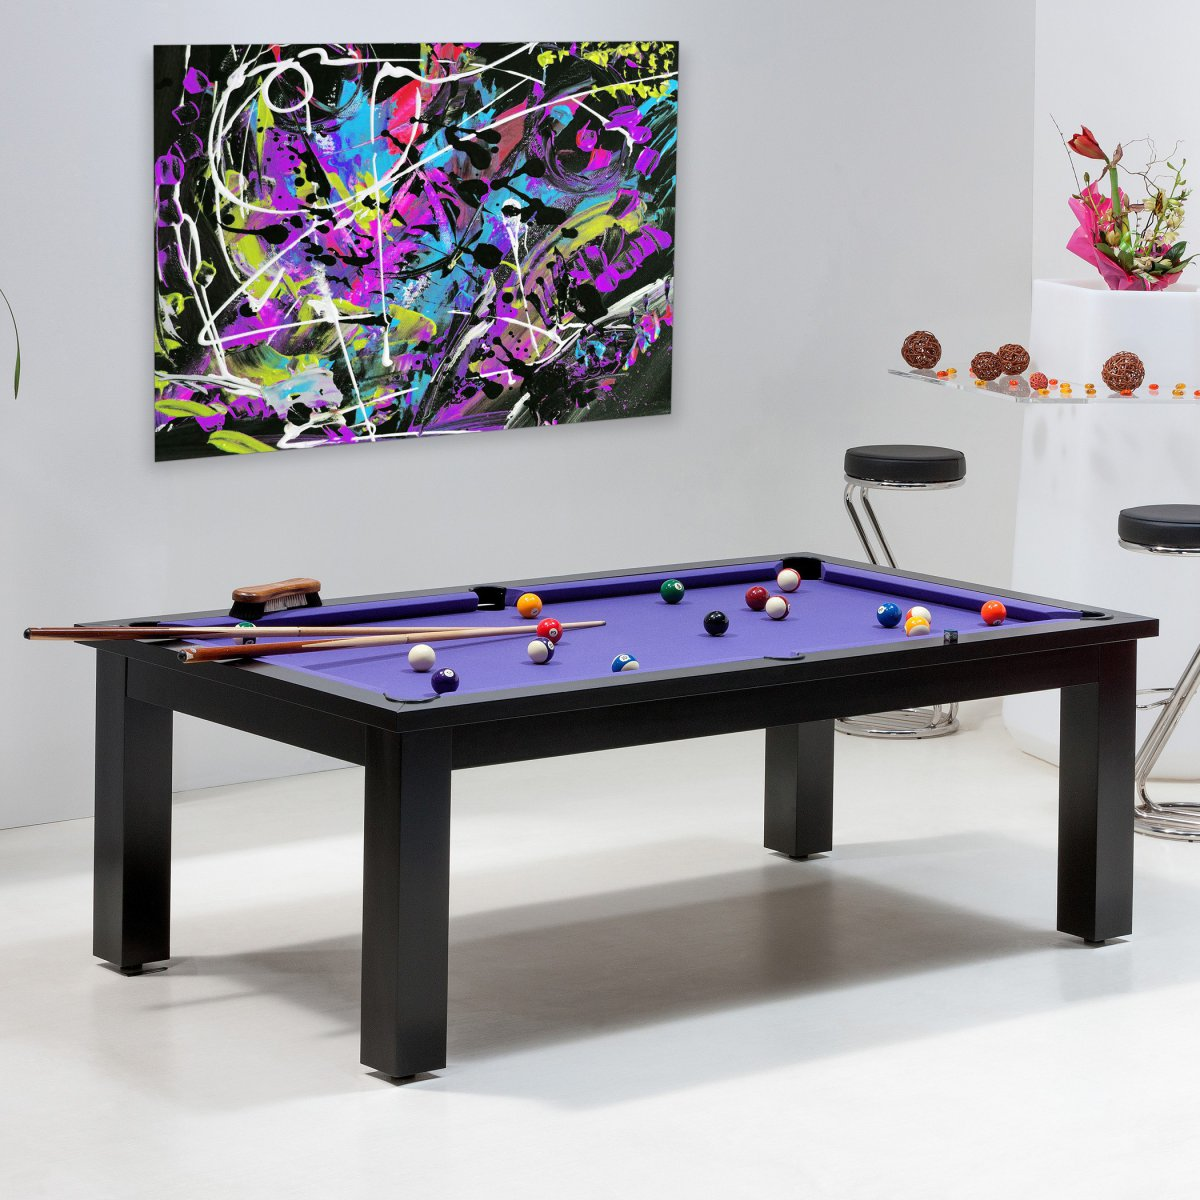 achat table billard francais table de lit a roulettes. Black Bedroom Furniture Sets. Home Design Ideas